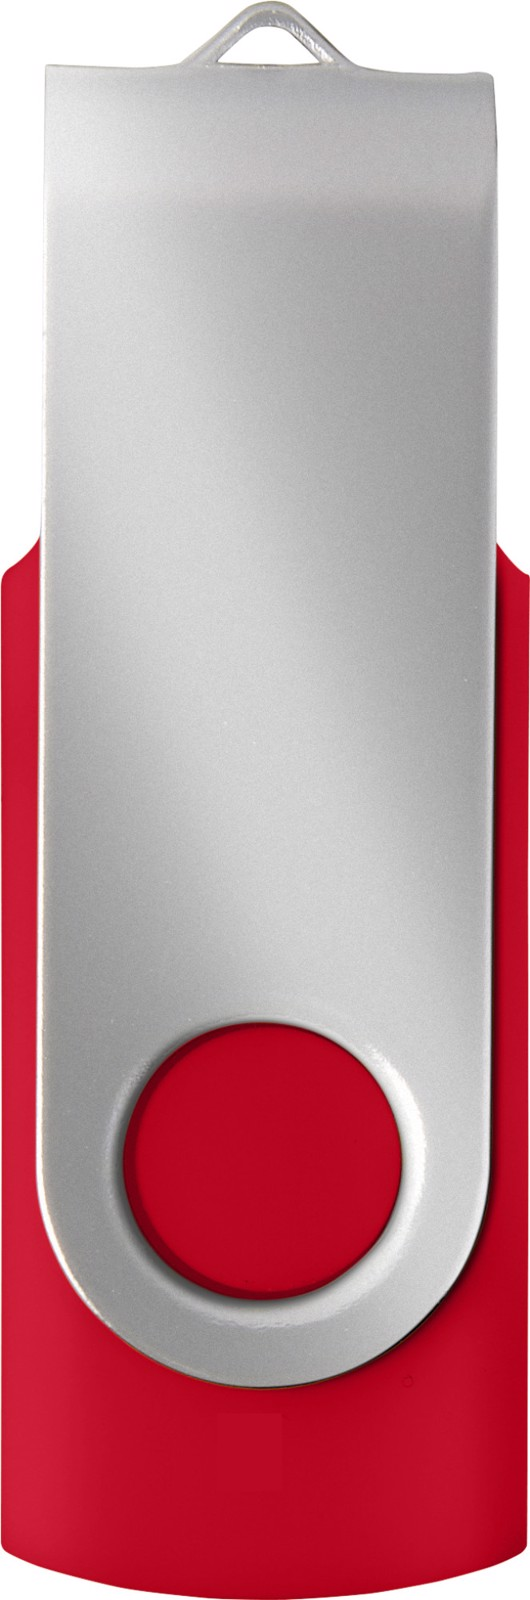 ABS USB drive (16GB/32GB) - Red / Silver